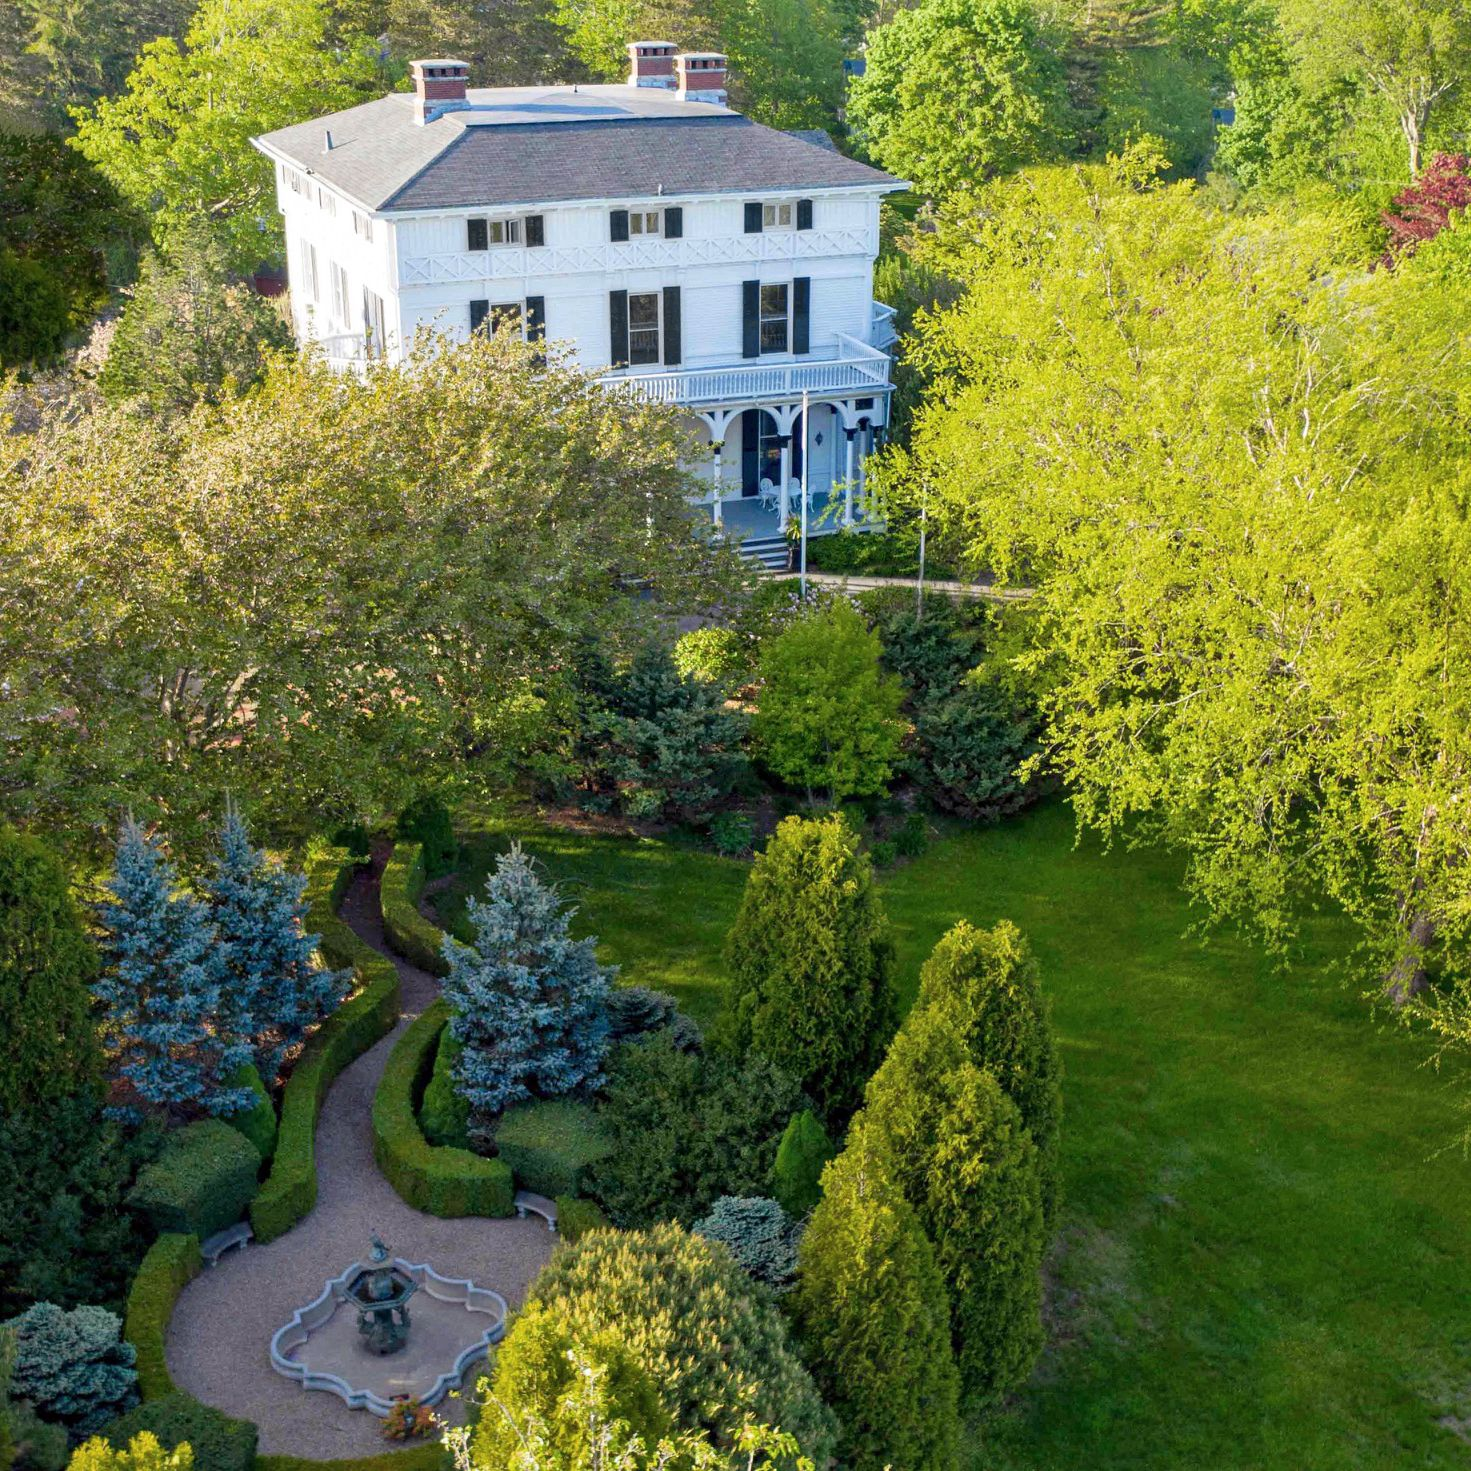 'VILLALON' ESTATE SELLS FOR $2.465MM,  MARKING THIRD HIGHEST SALE IN MIDDLETOWN THIS YEAR*